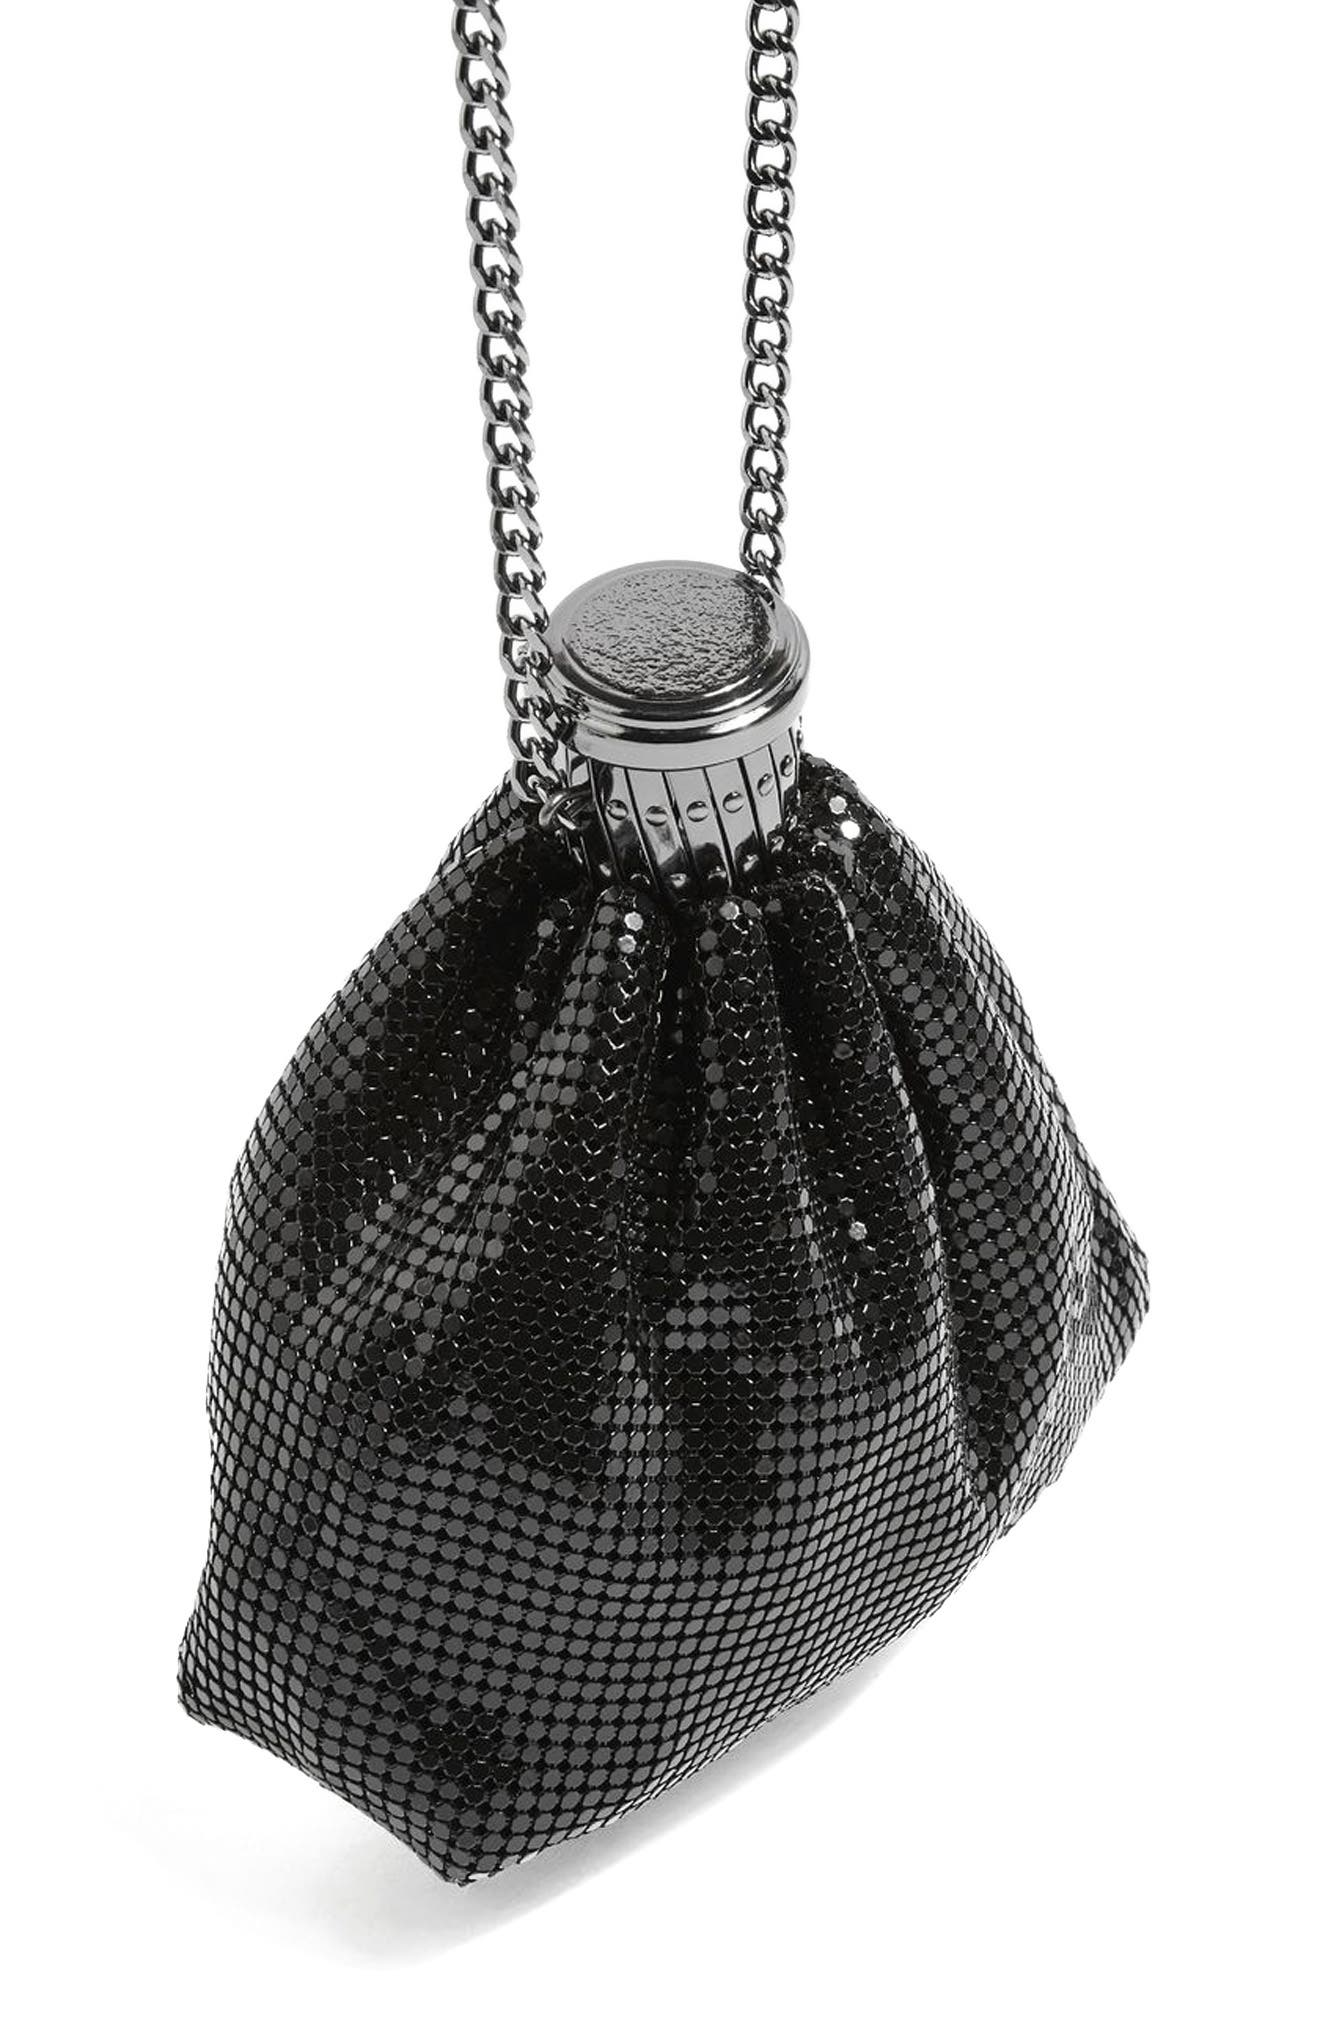 Chain Mail Pouch Crossbody Bag,                         Main,                         color, 040